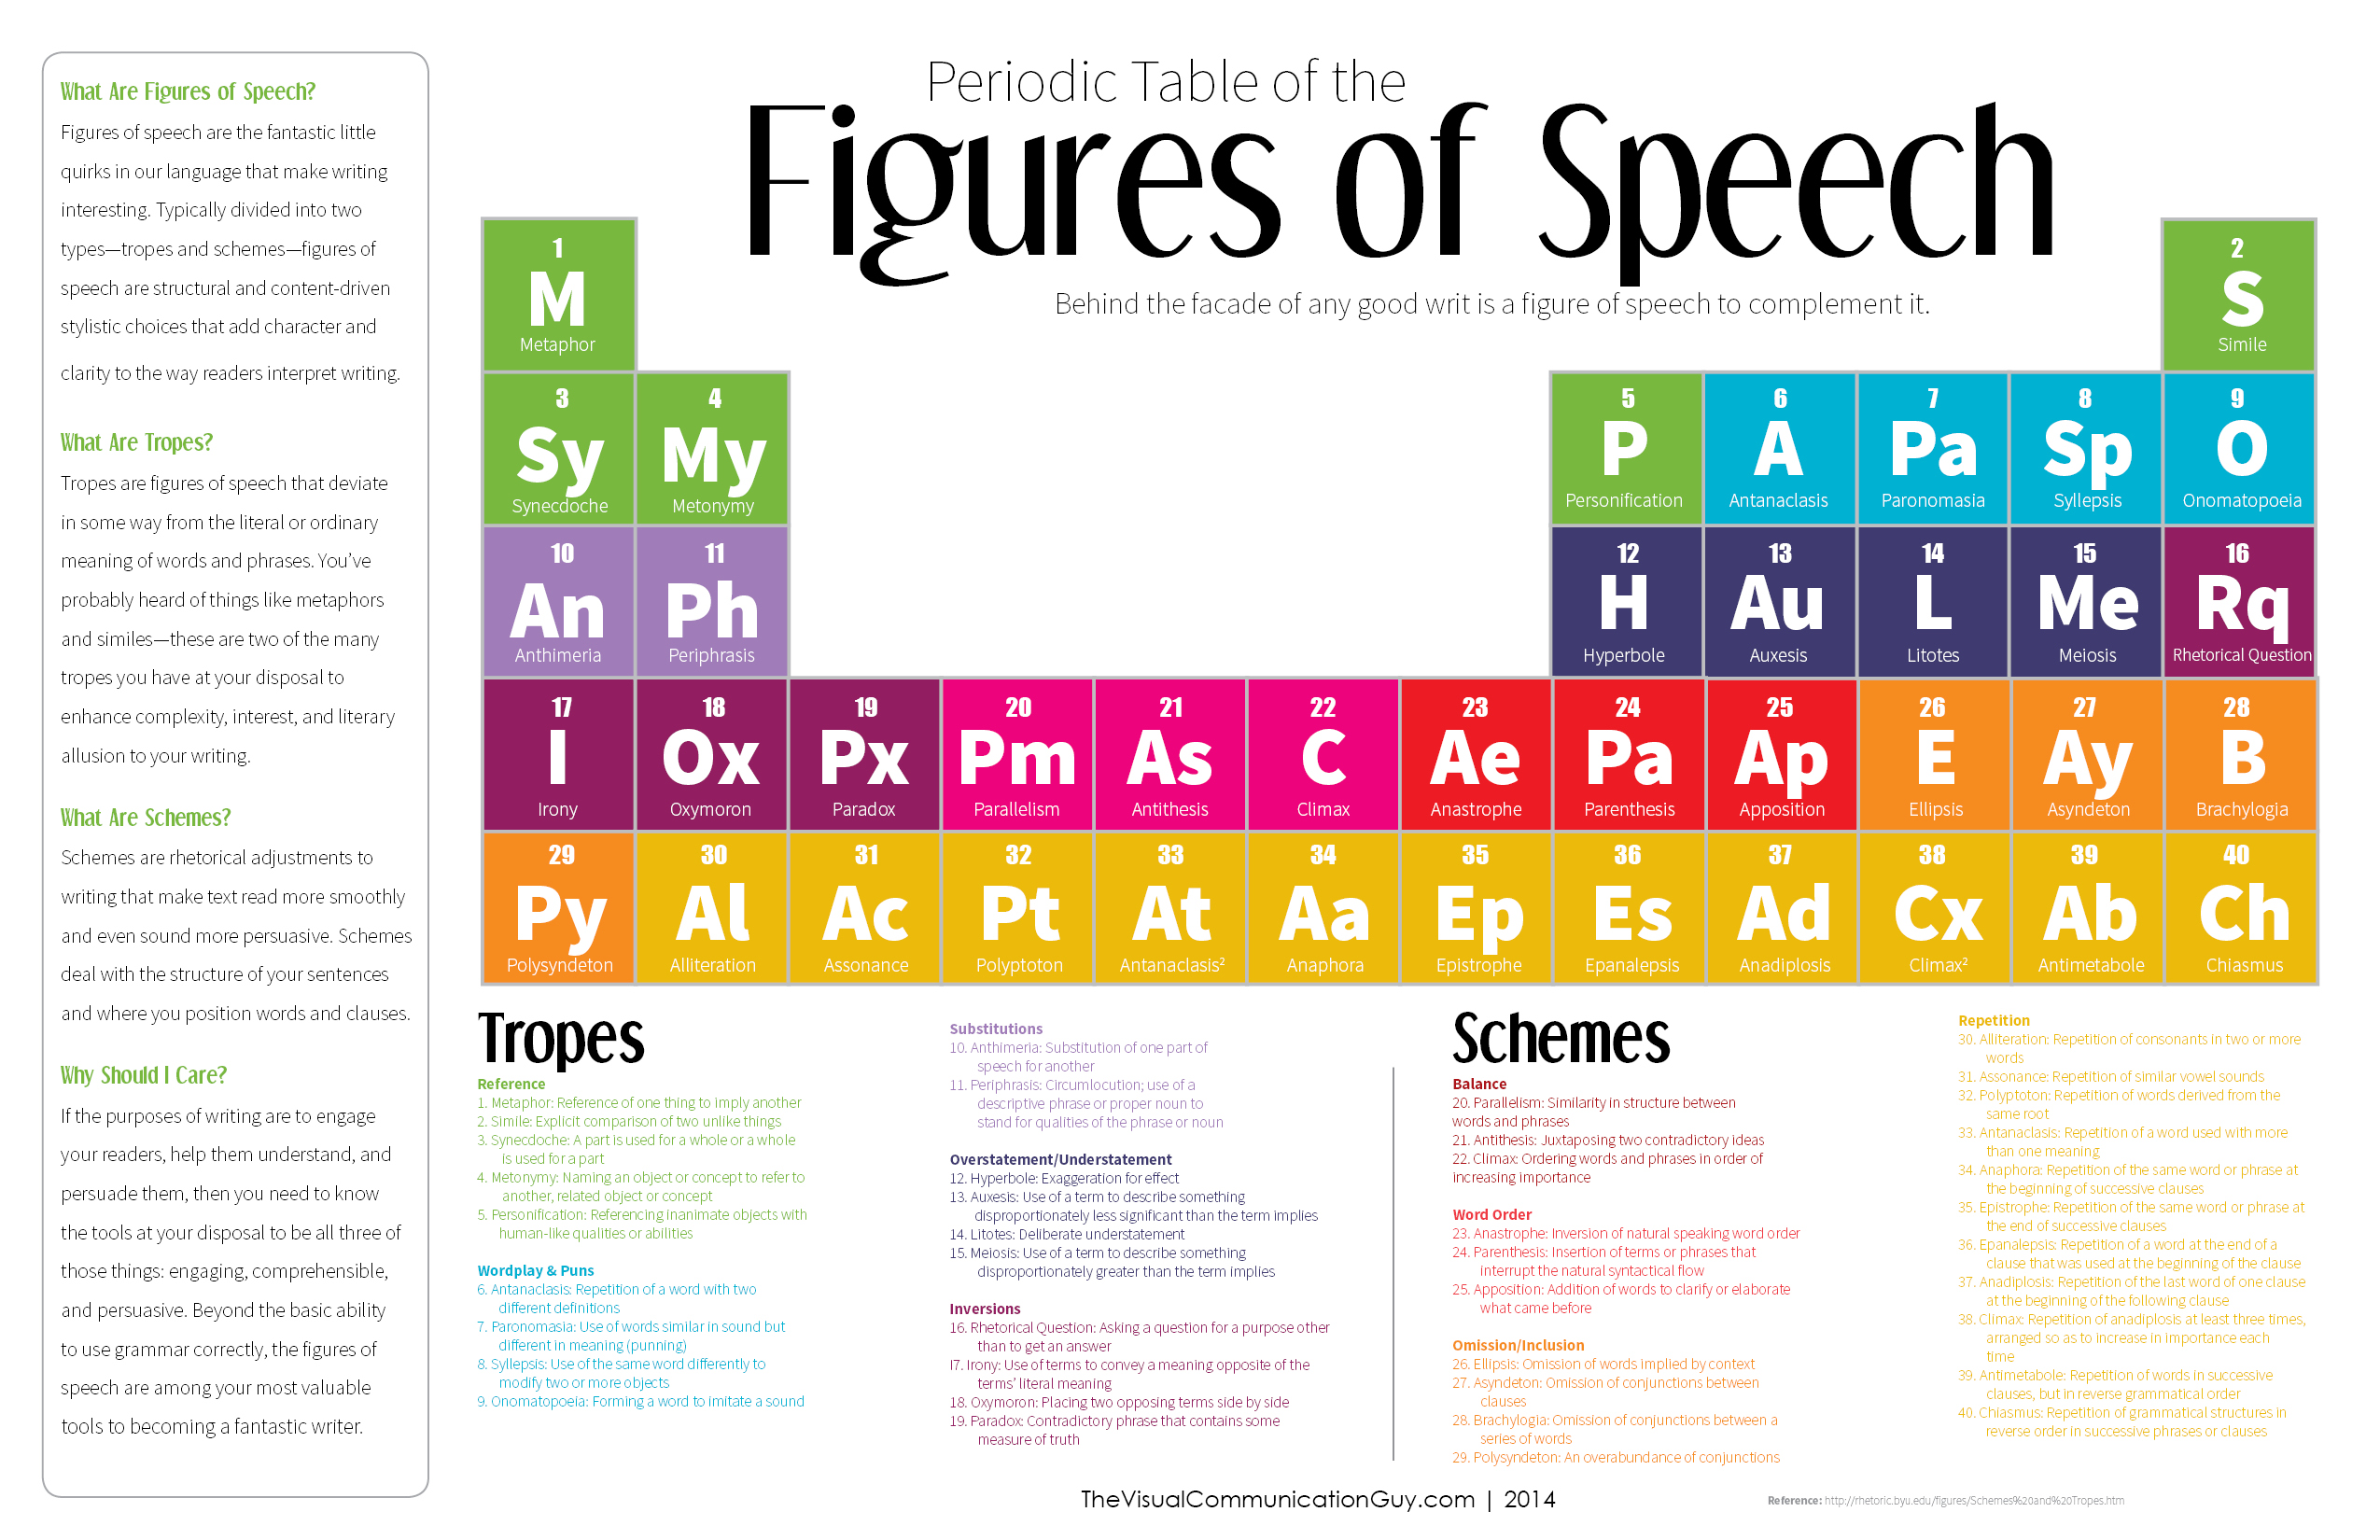 The Periodic Table Of The Figures Of Speech 40 Ways To